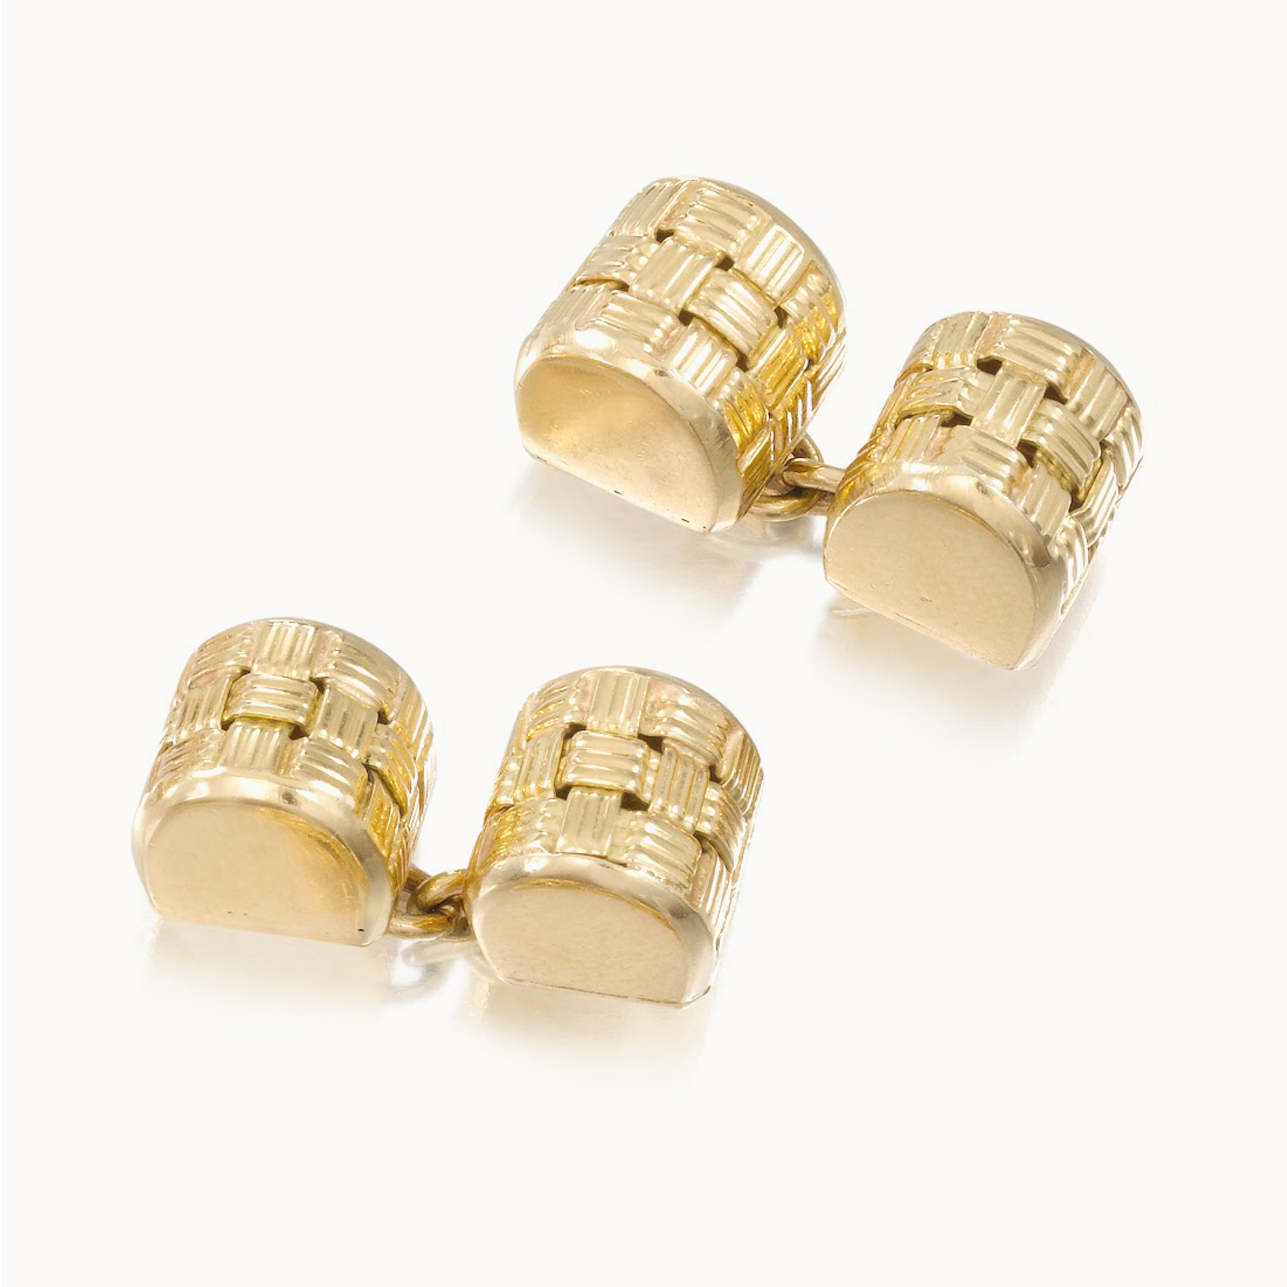 YELLOW GOLD LOAF CUFFLINKS